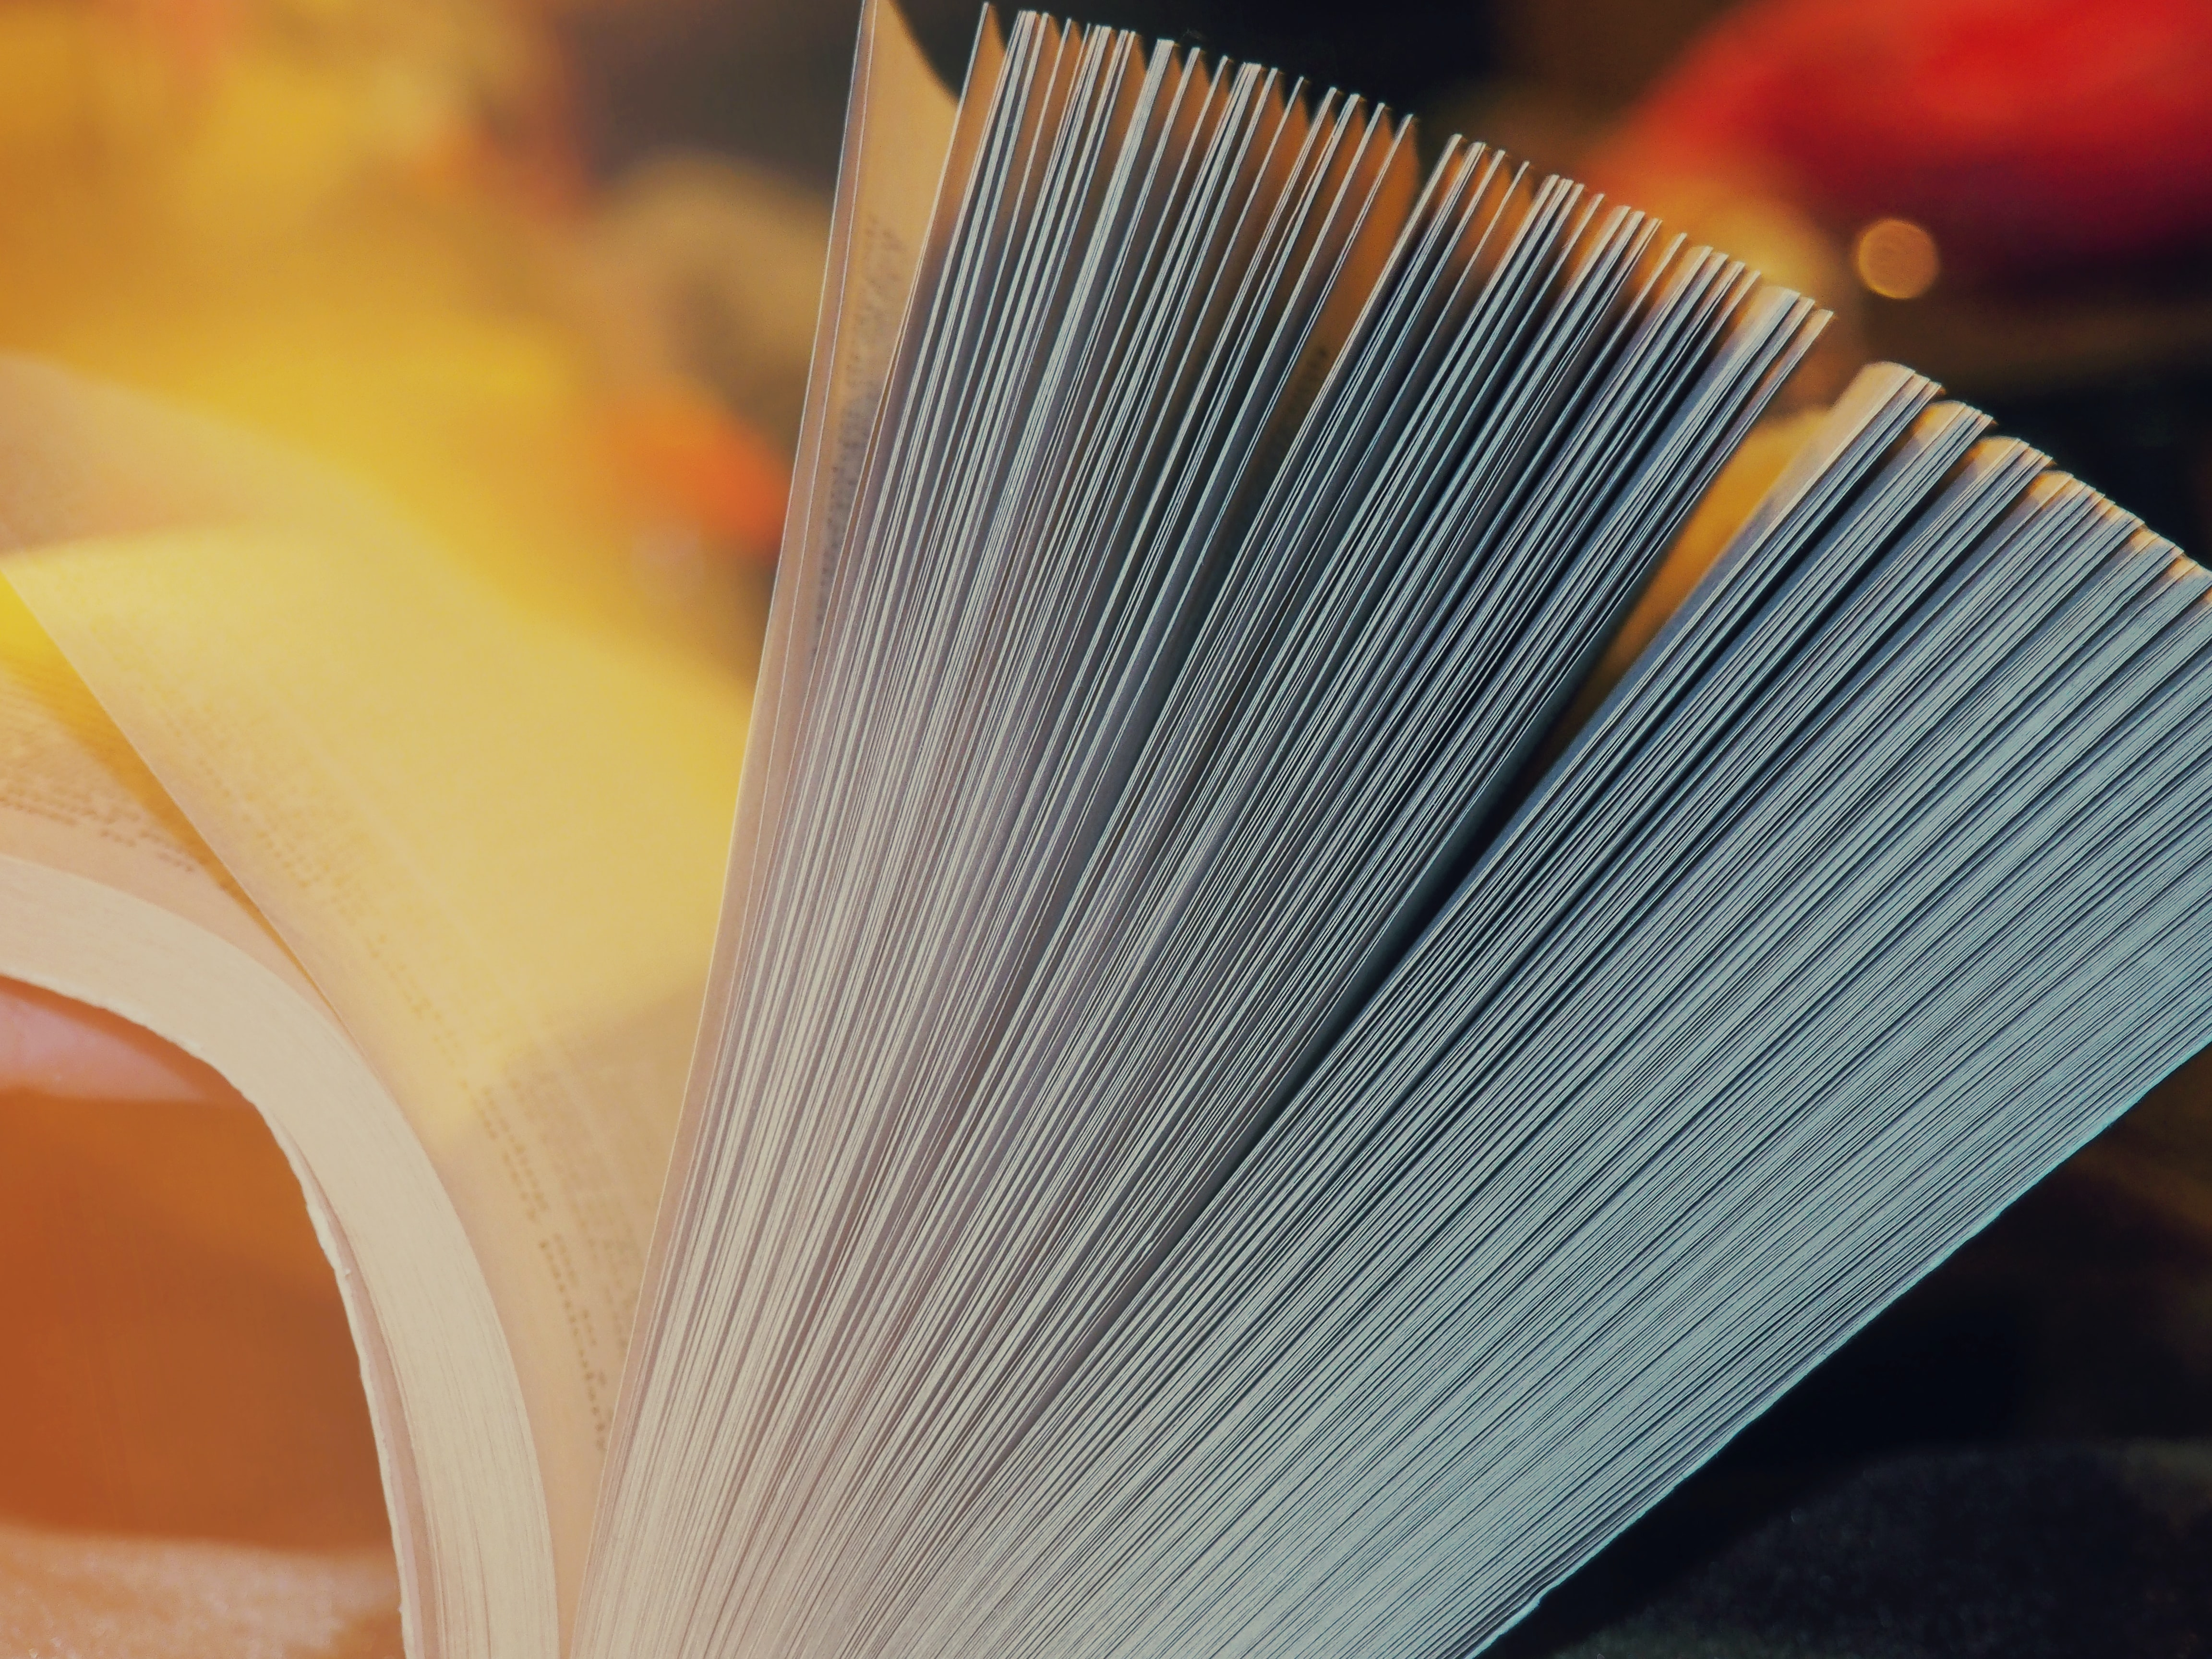 close-up photography of book page opening